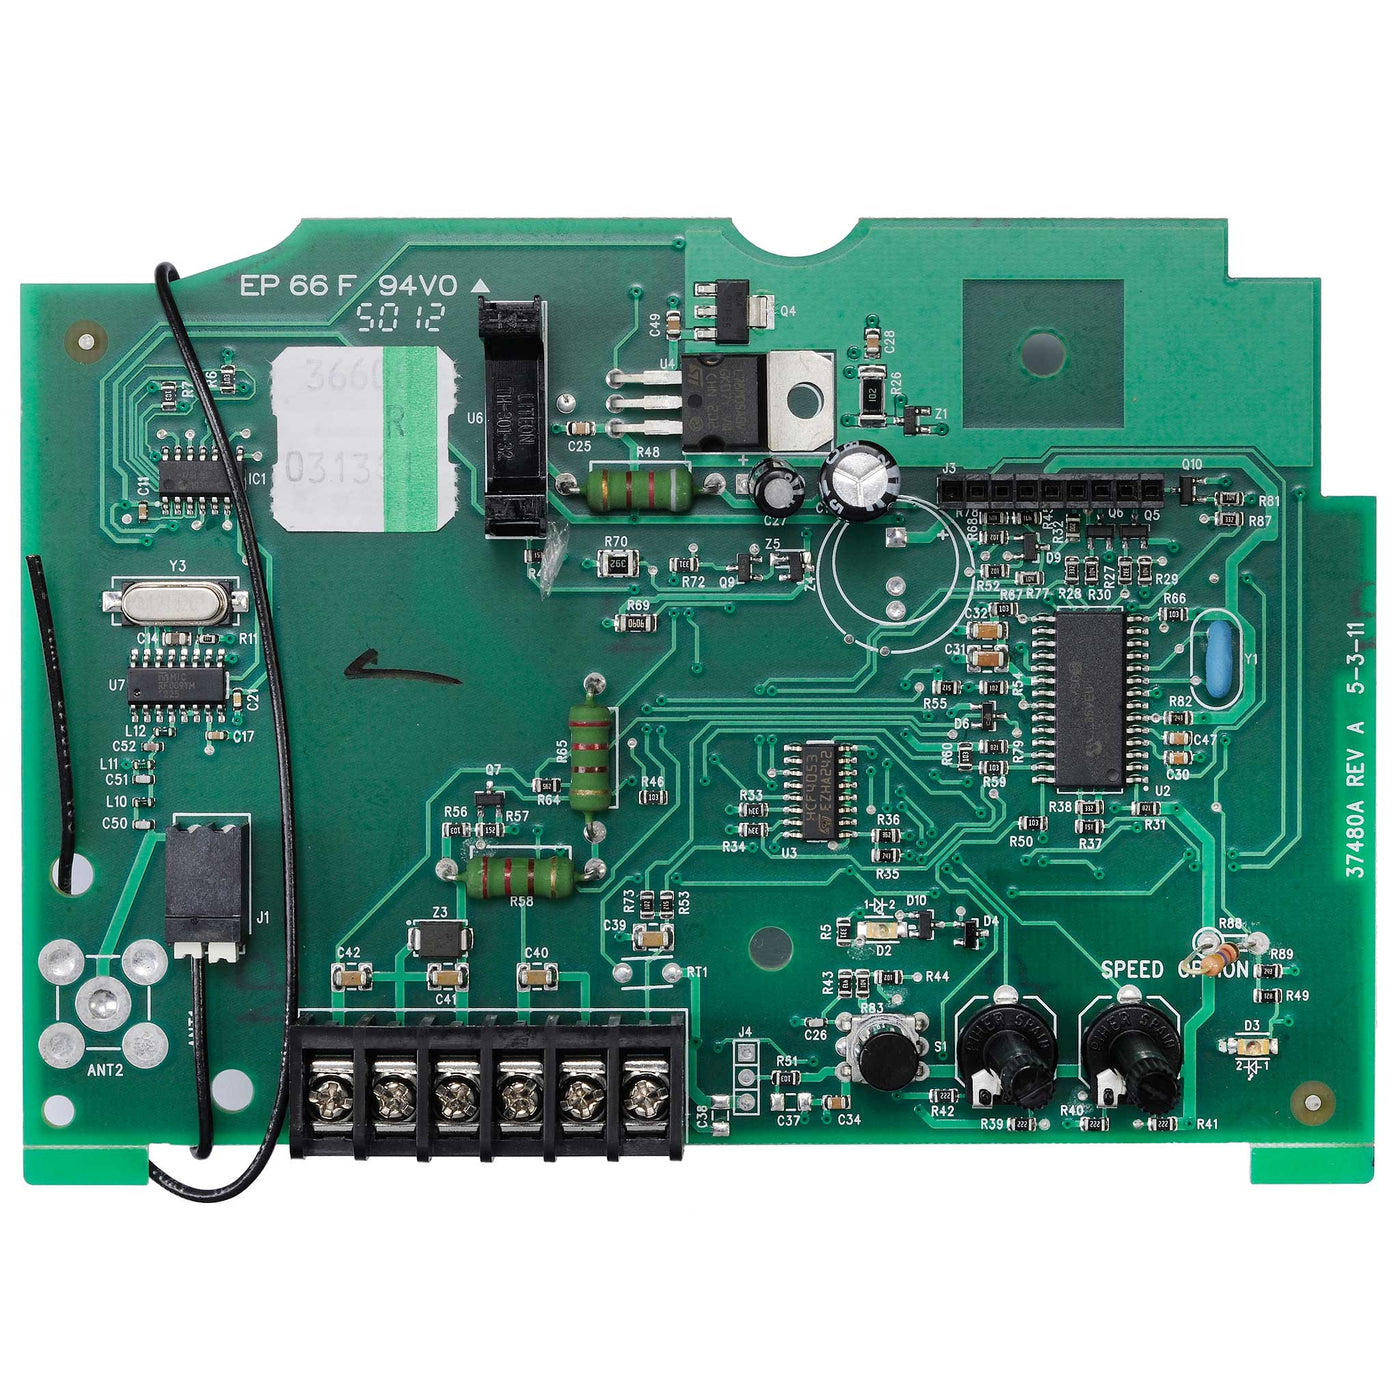 Genie Control Board 36600rs The Company Circuit Parts Service